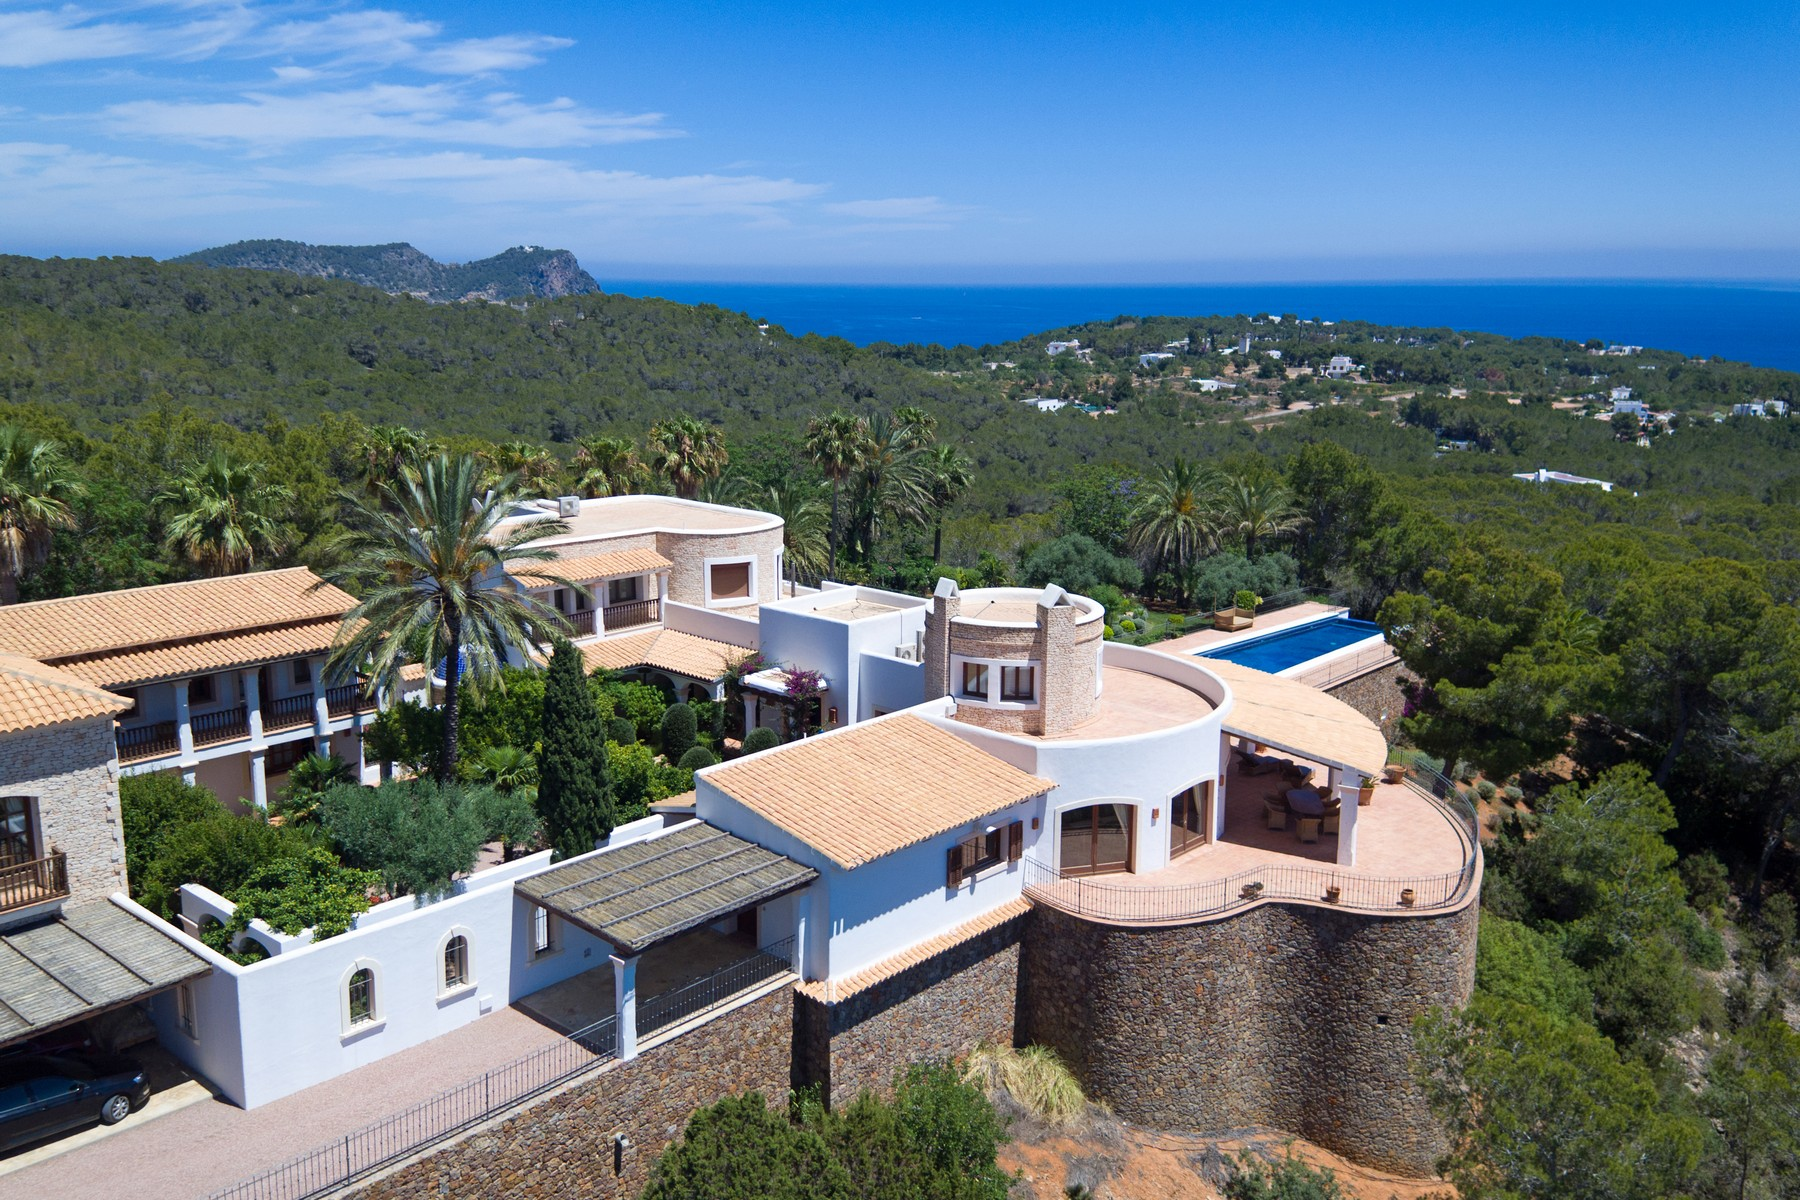 Single Family Home for Sale at Impressive Finca in San Carlos Santa Eulalia, Ibiza, 07819 Spain